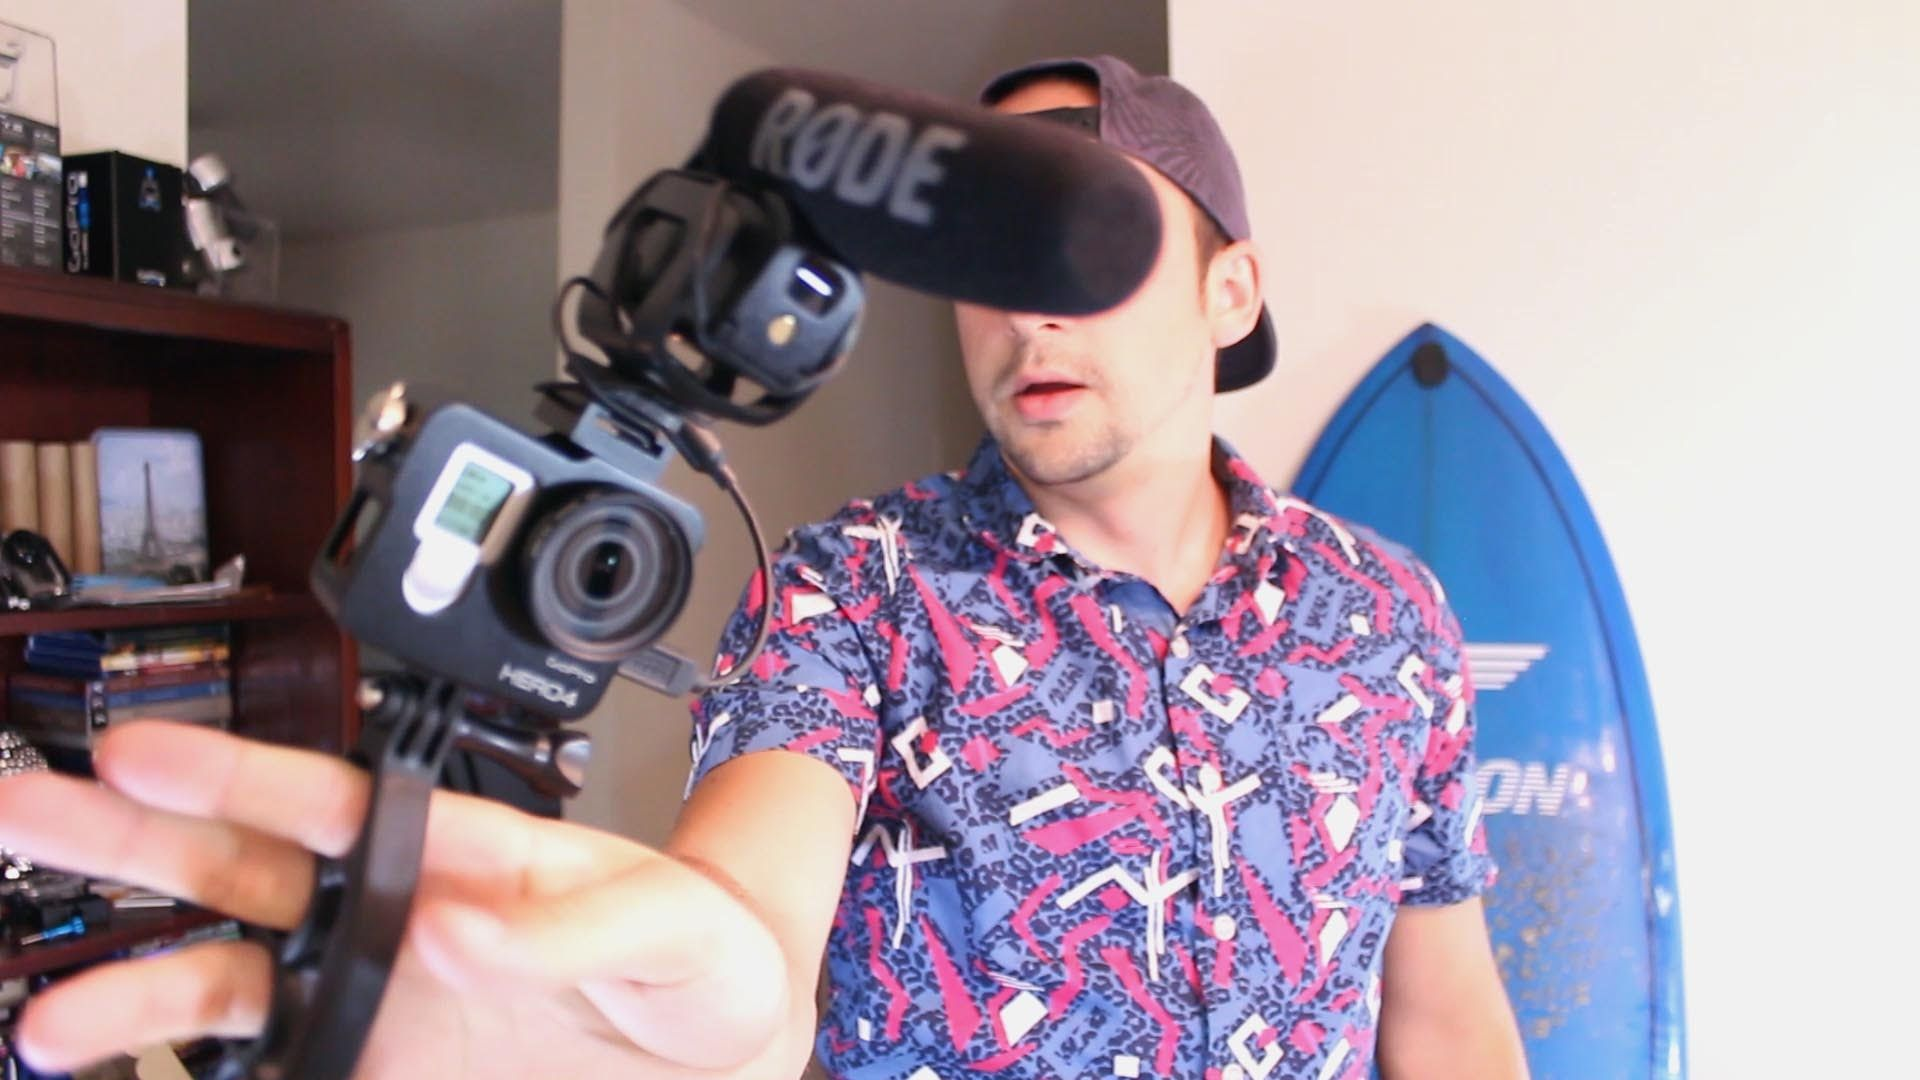 Trying out a different vlogging setup using a GoPro. What